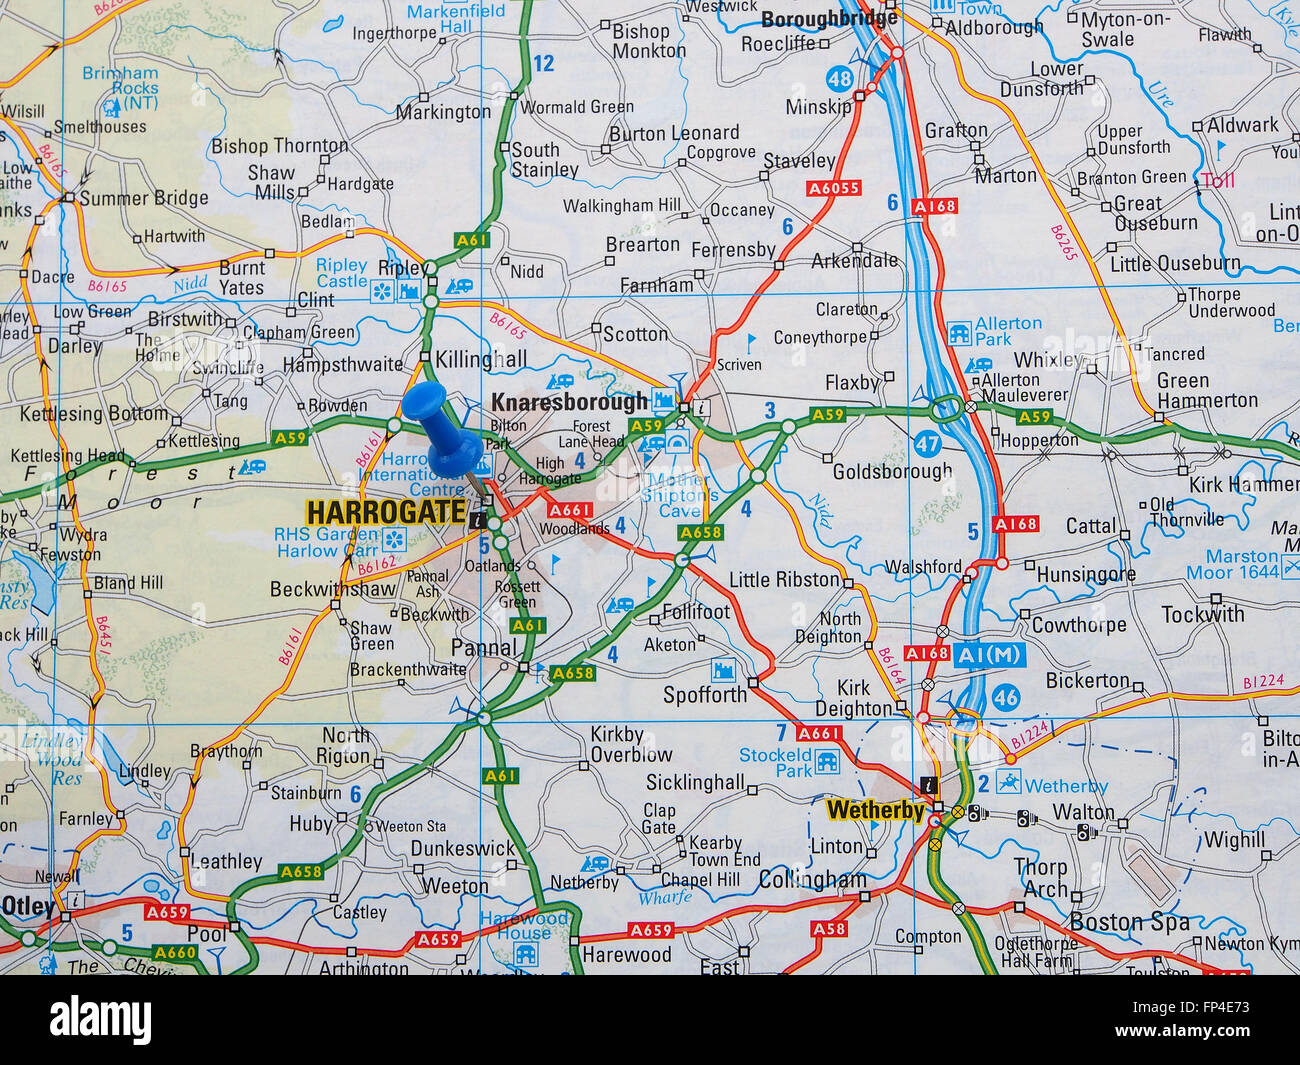 Worksheet. Road map of Yorkshire England showing the Harrogate and Wetherby